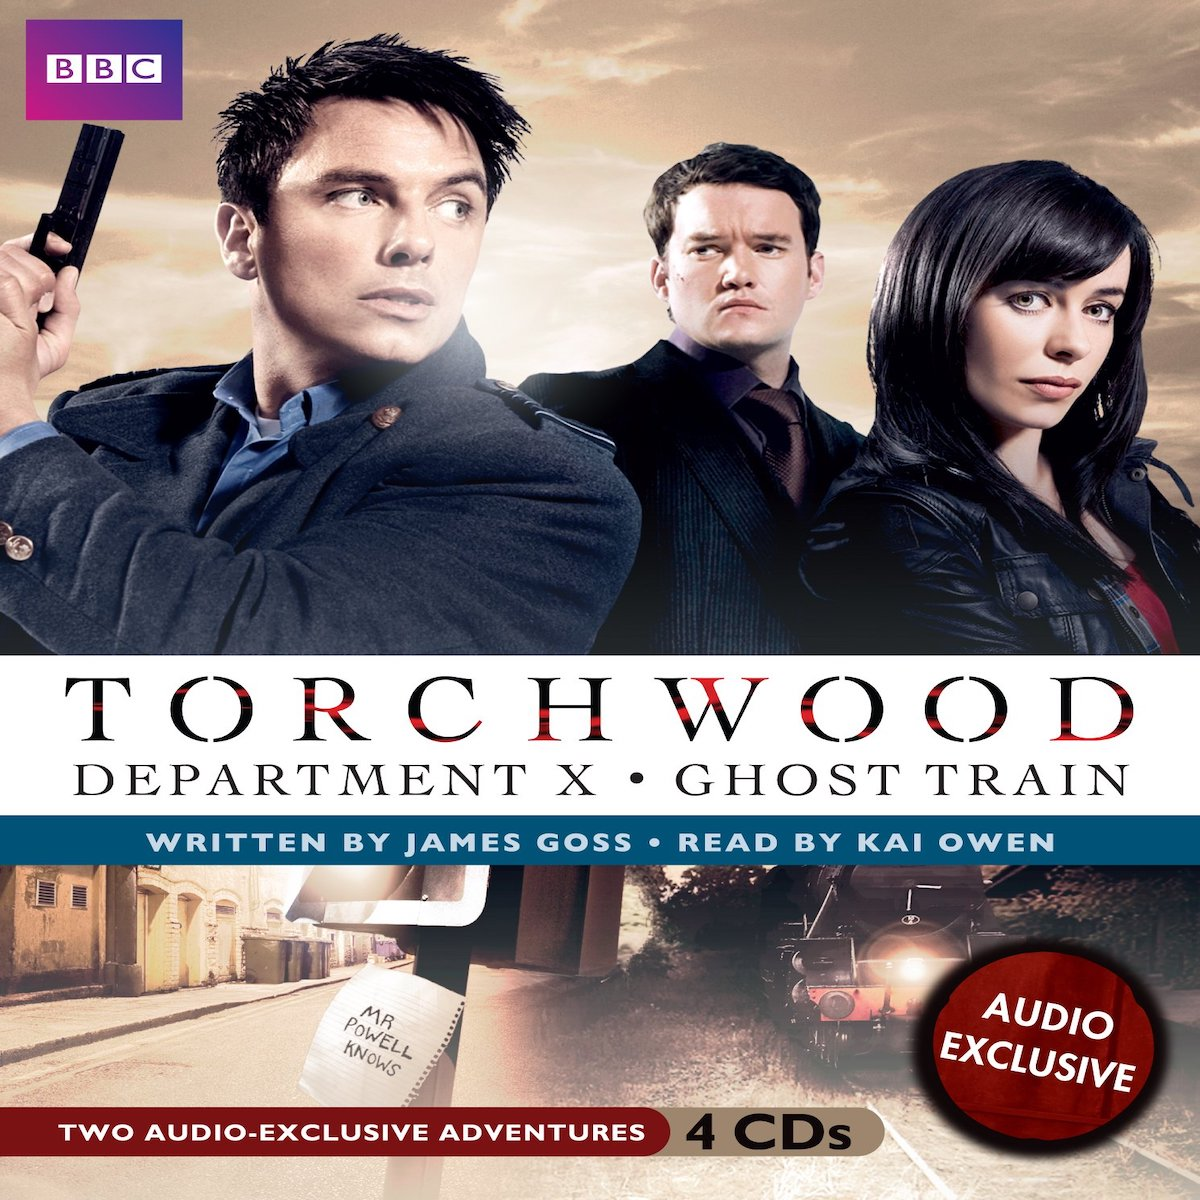 Torchwood Department X